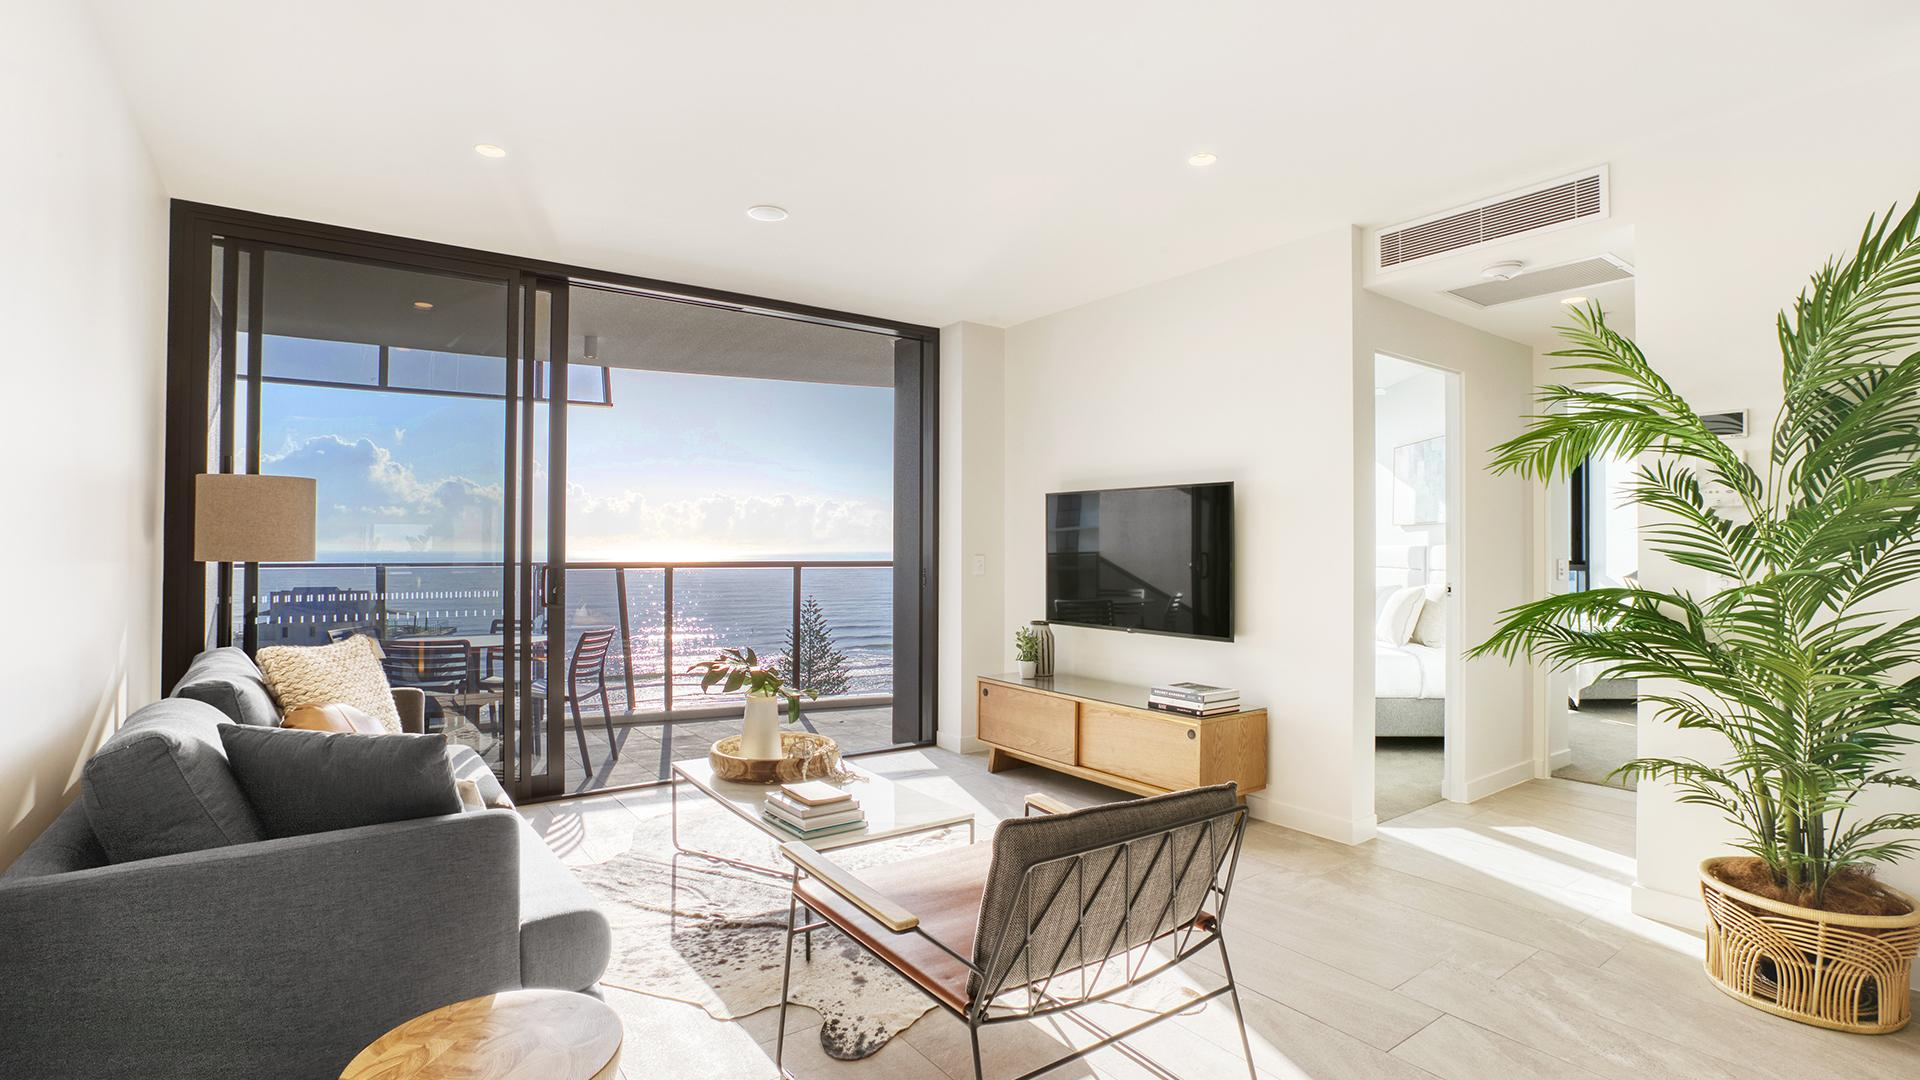 Two-Bedroom Ocean-View Apartment image 1 at Vue Broadbeach by City of Gold Coast, Queensland, Australia